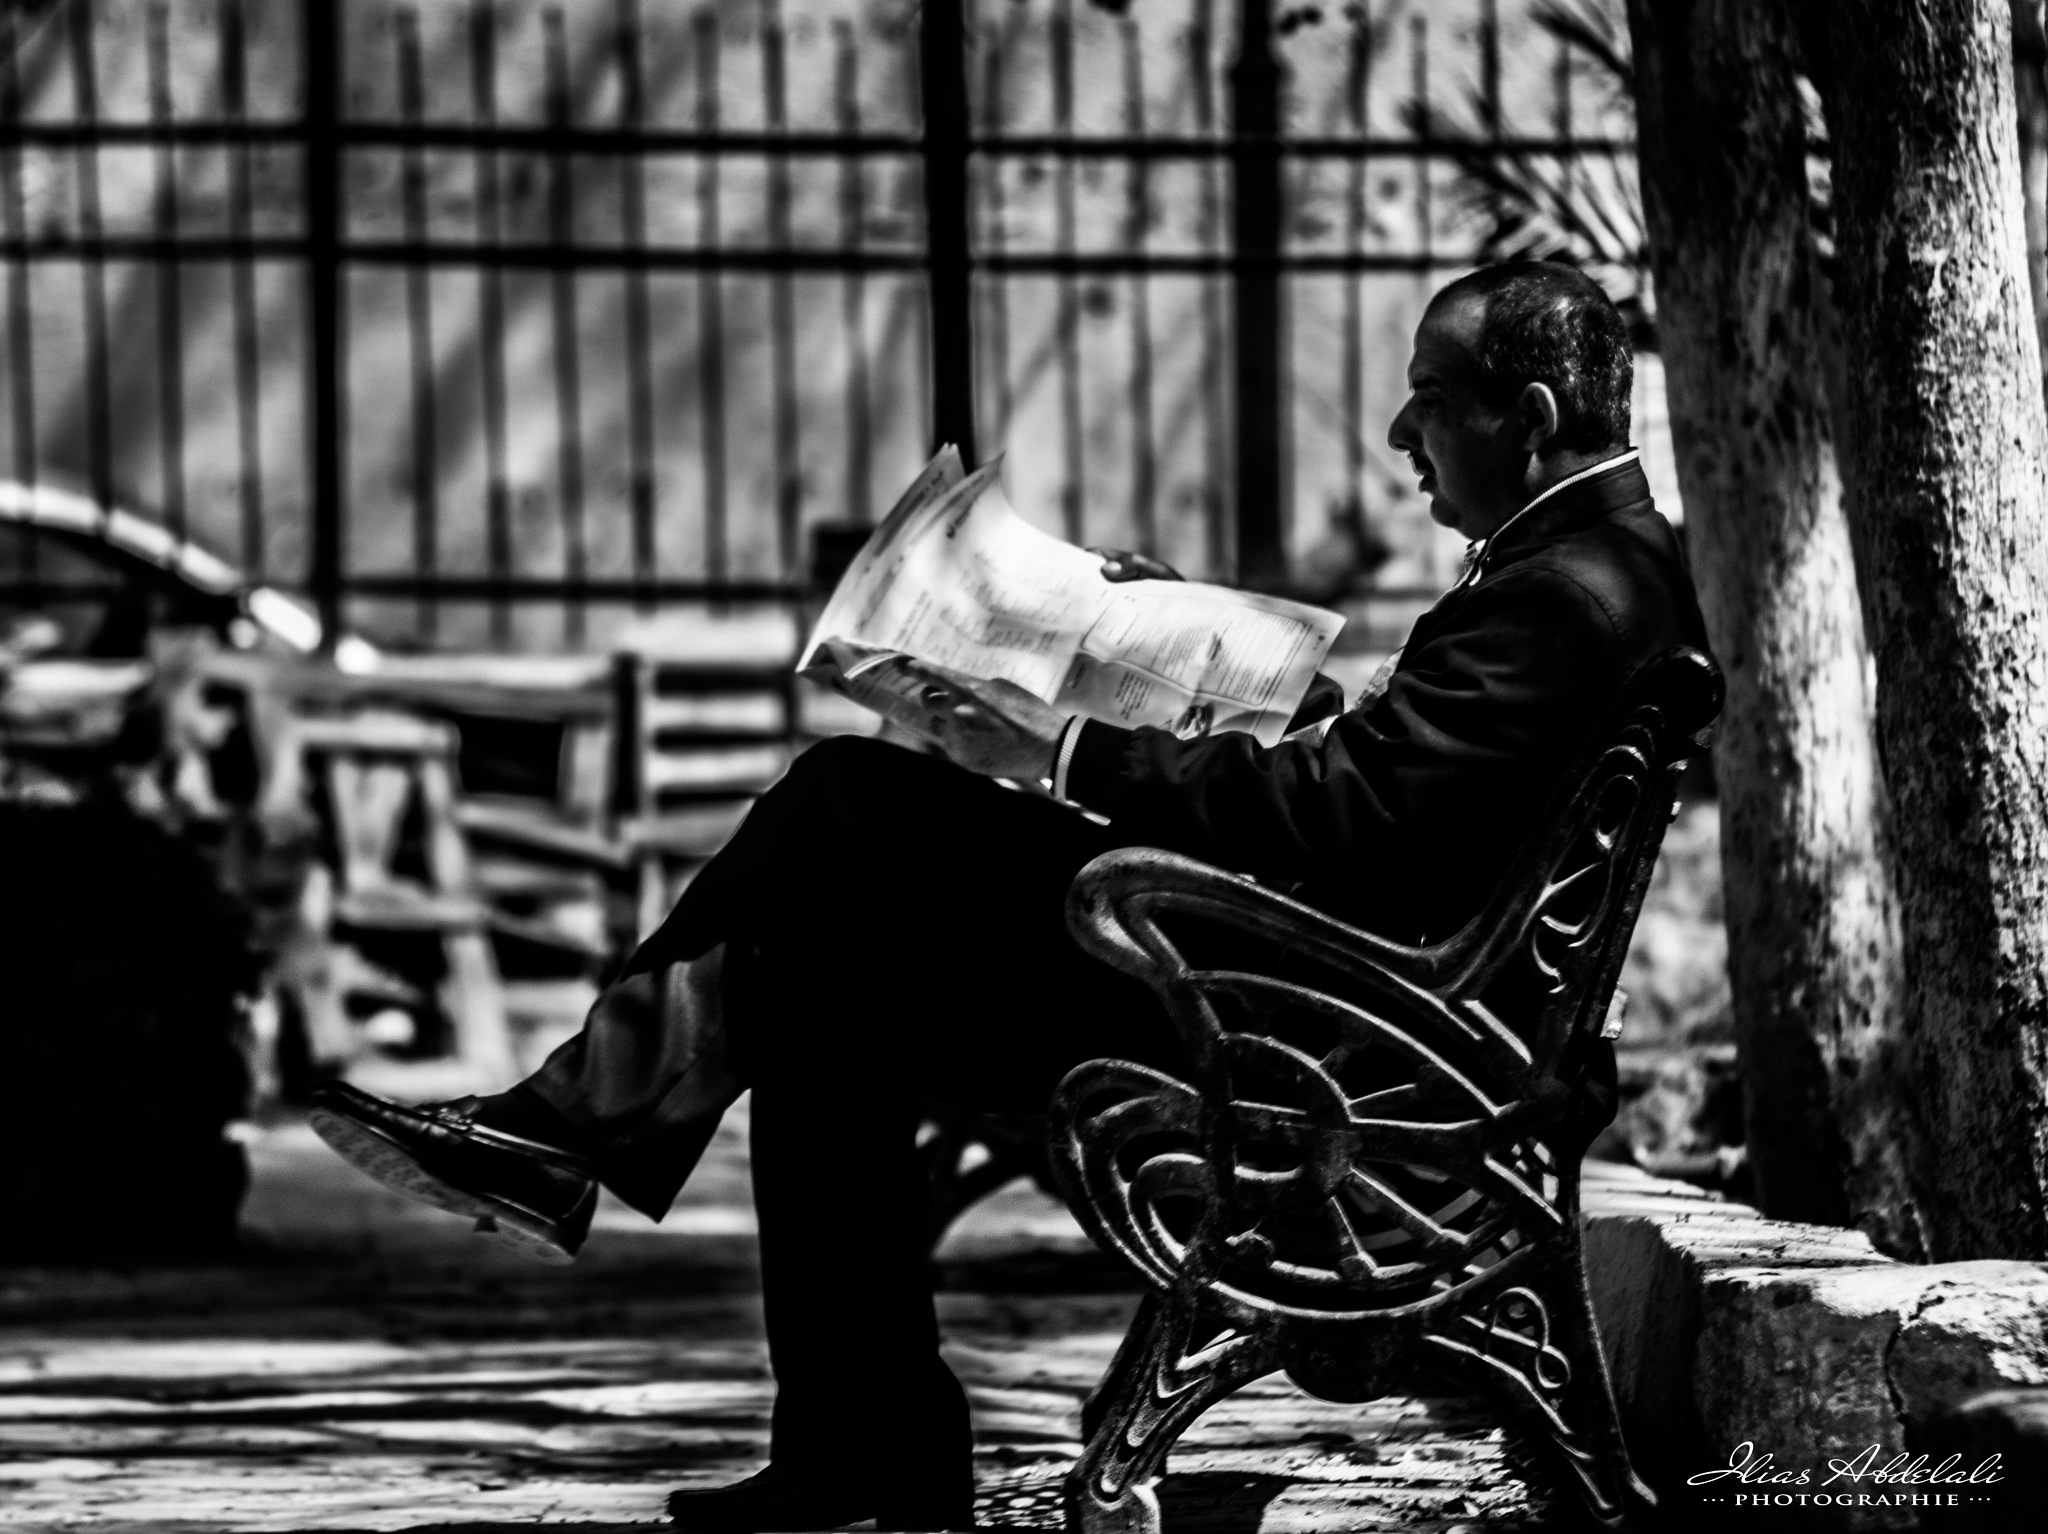 The Reader by Ilias Abdelali